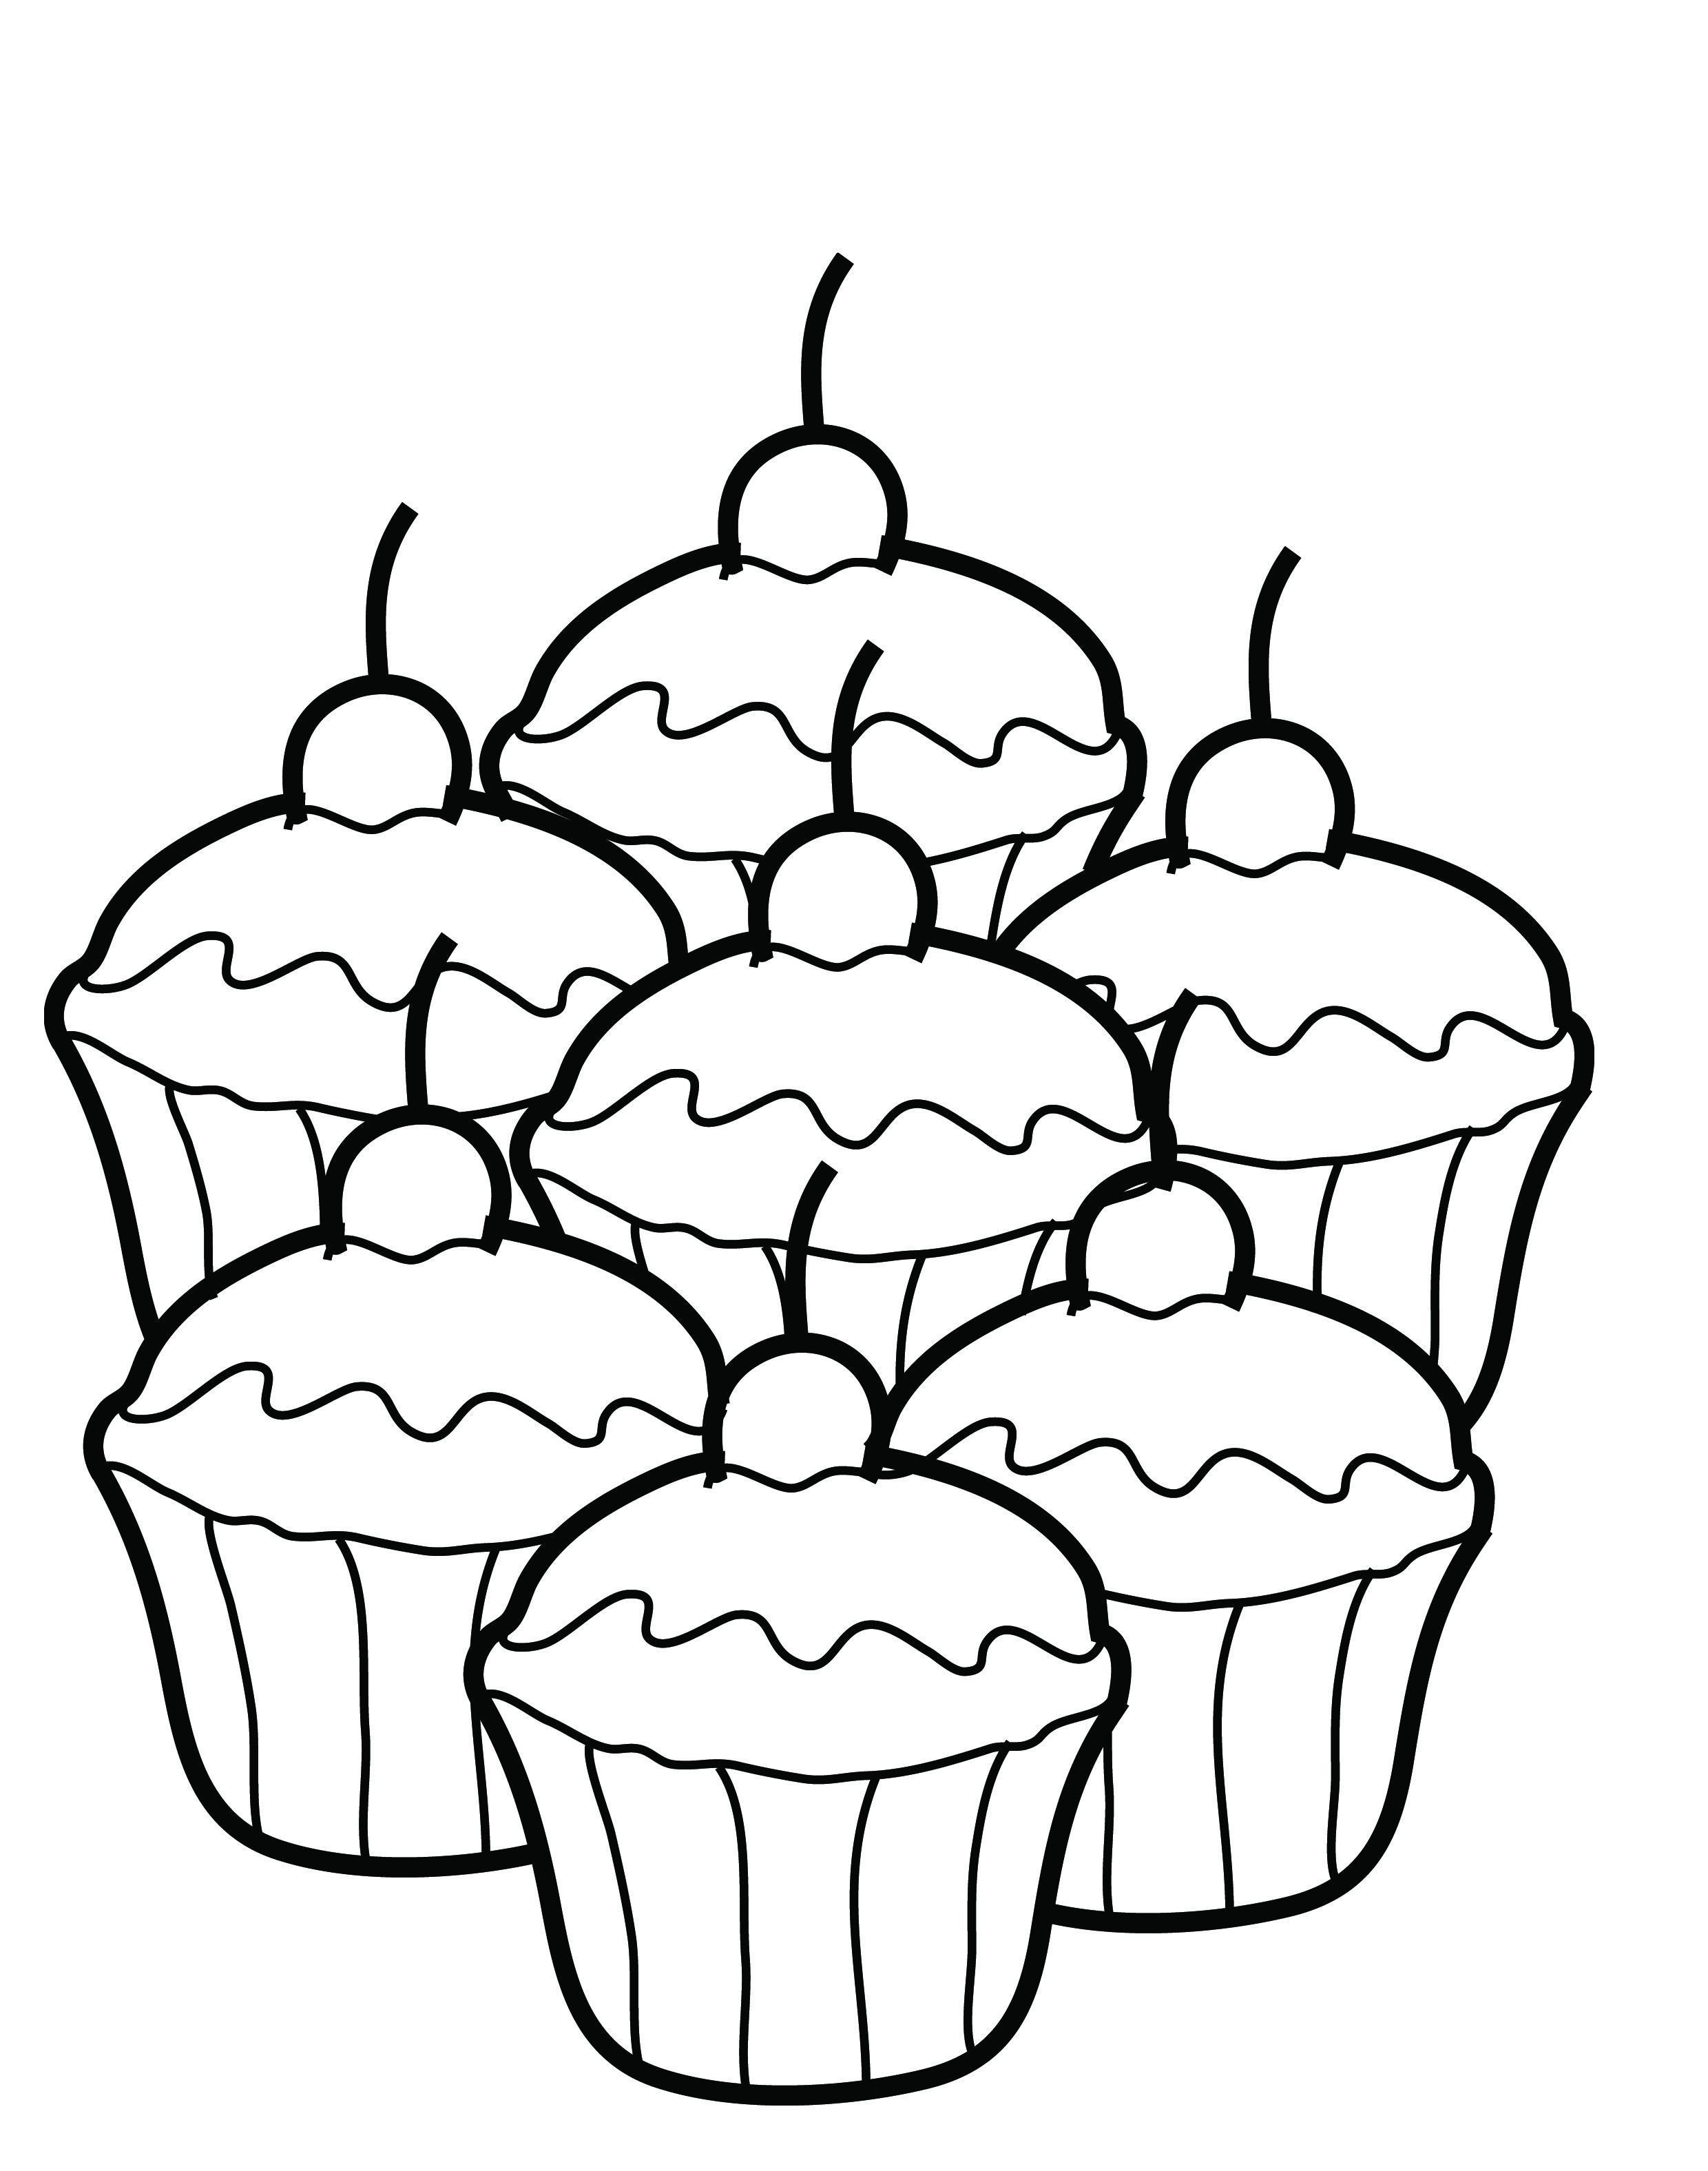 cupcake coloring pages for kids - Colouring Ins